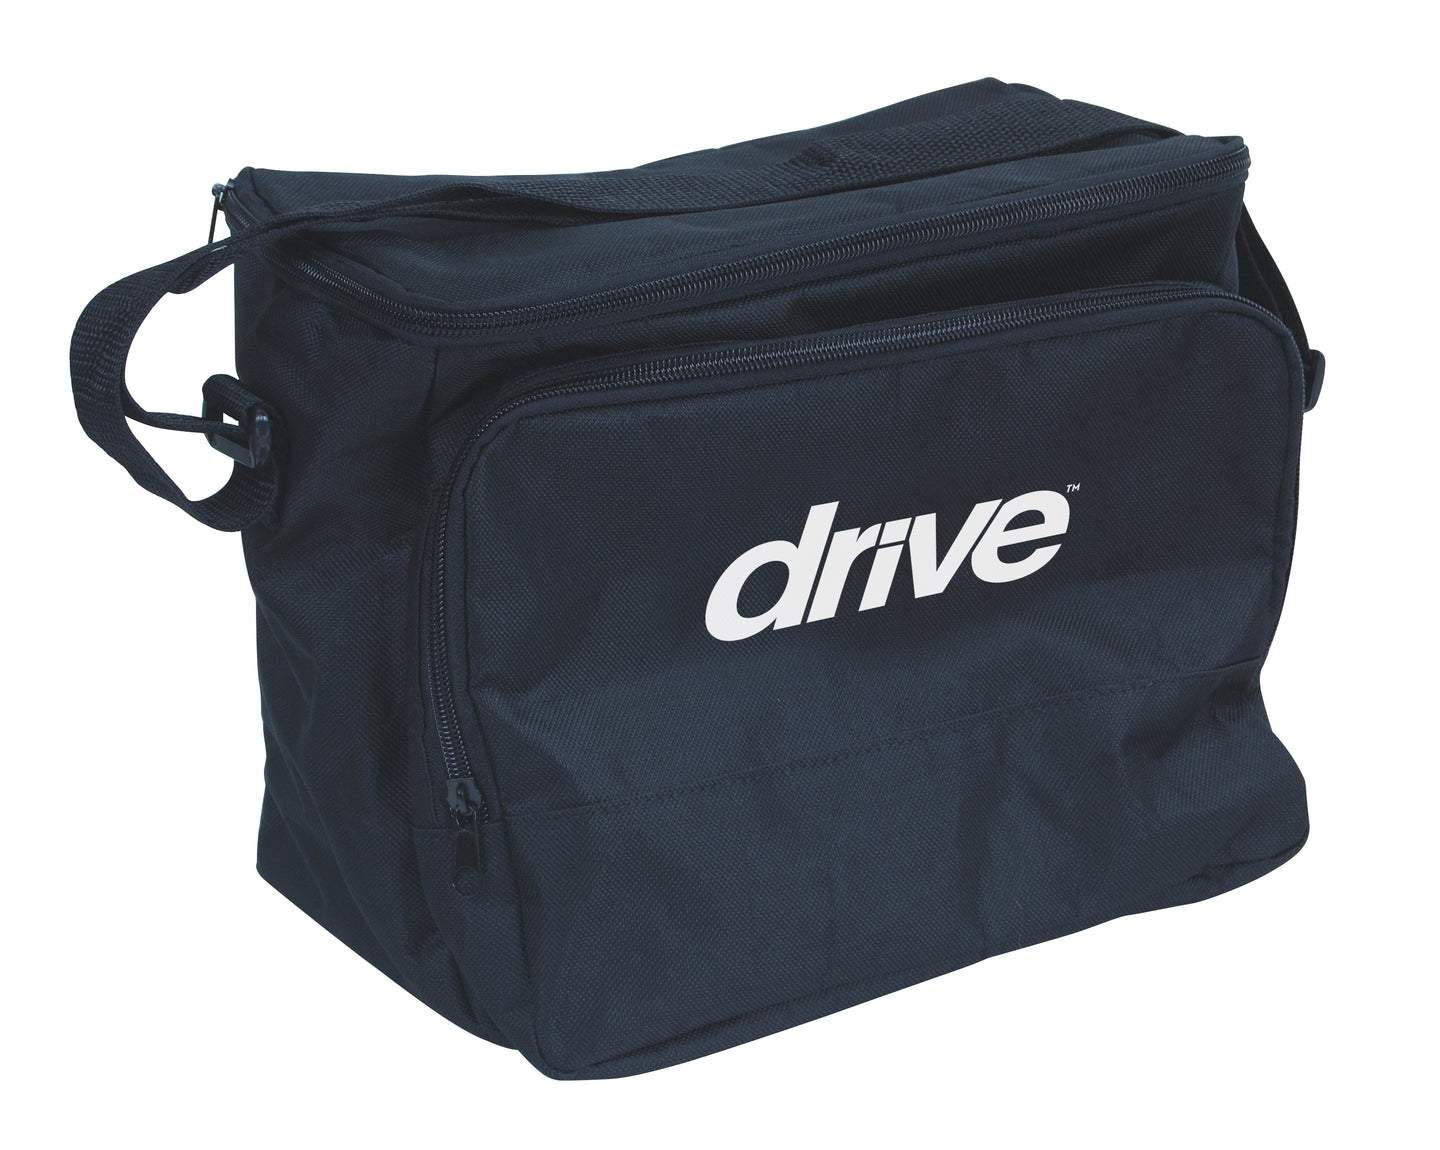 Drive Nebulizer Carry Bag